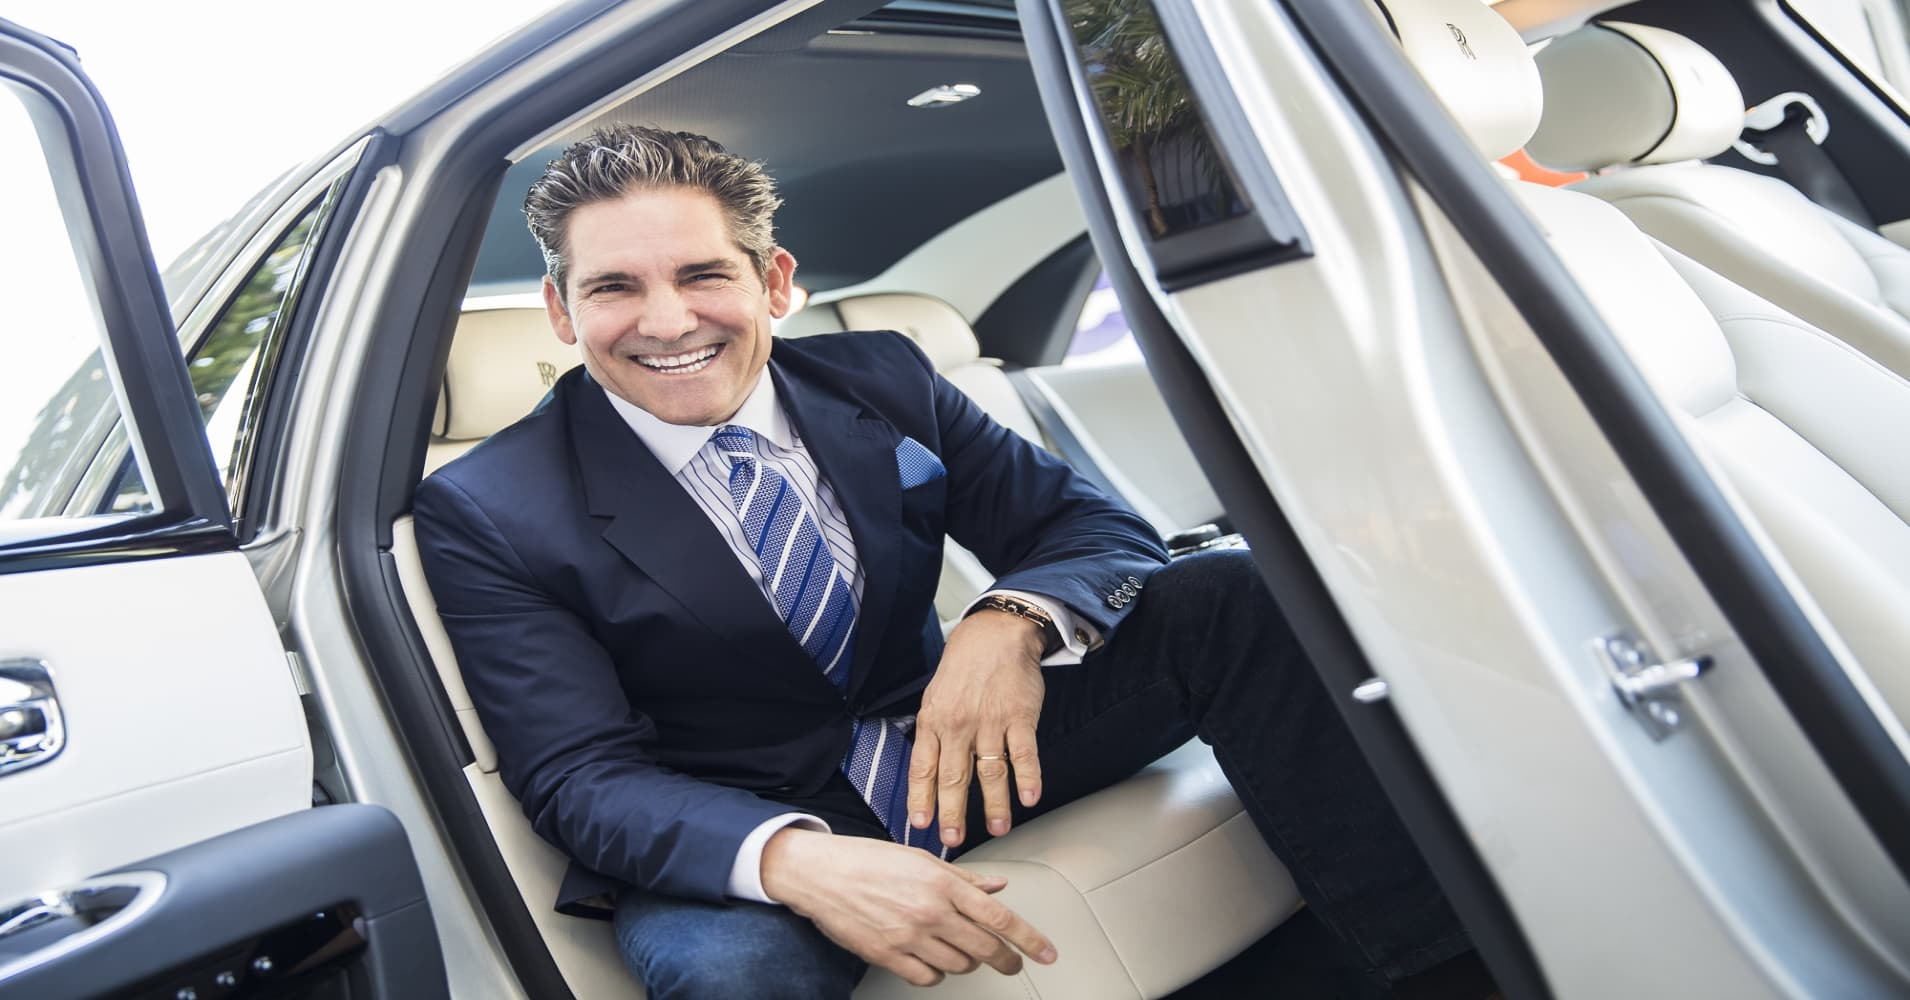 Self-made millionaire Grant Cardone's No. 1 rule for success